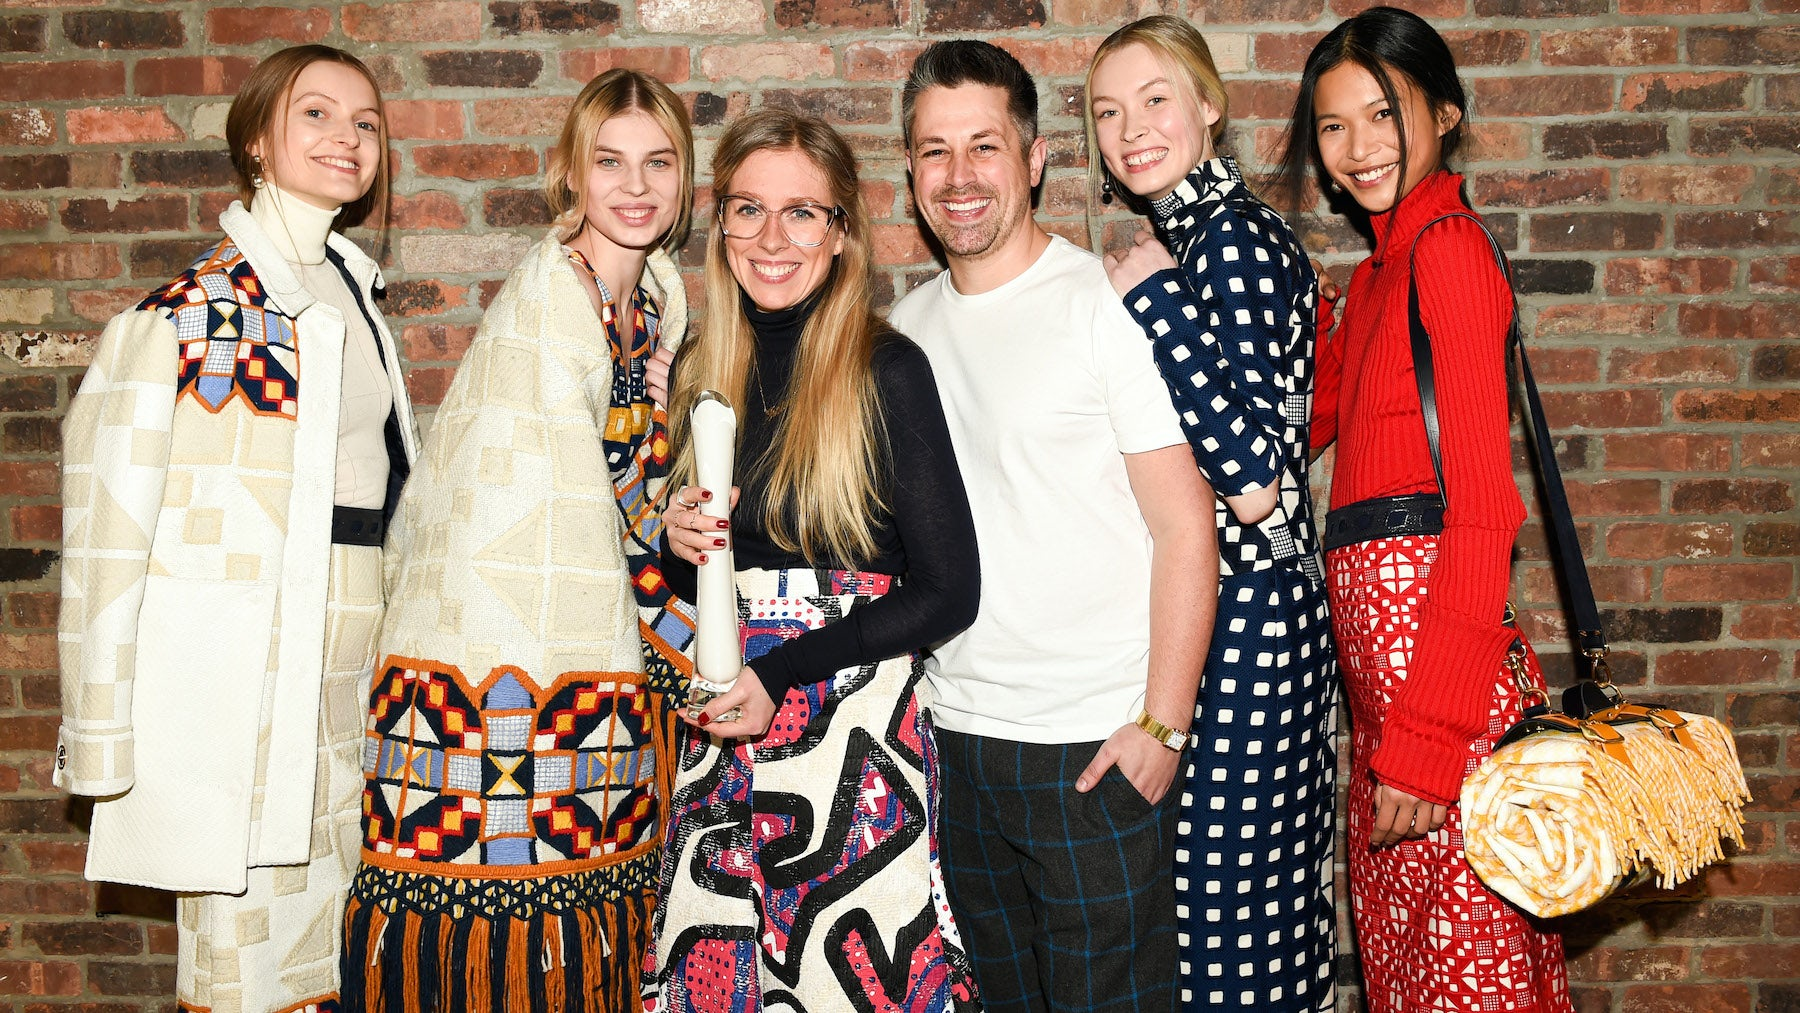 Catherine Teatum and Rob Jones with models wearing their designs | Source: Courtesy